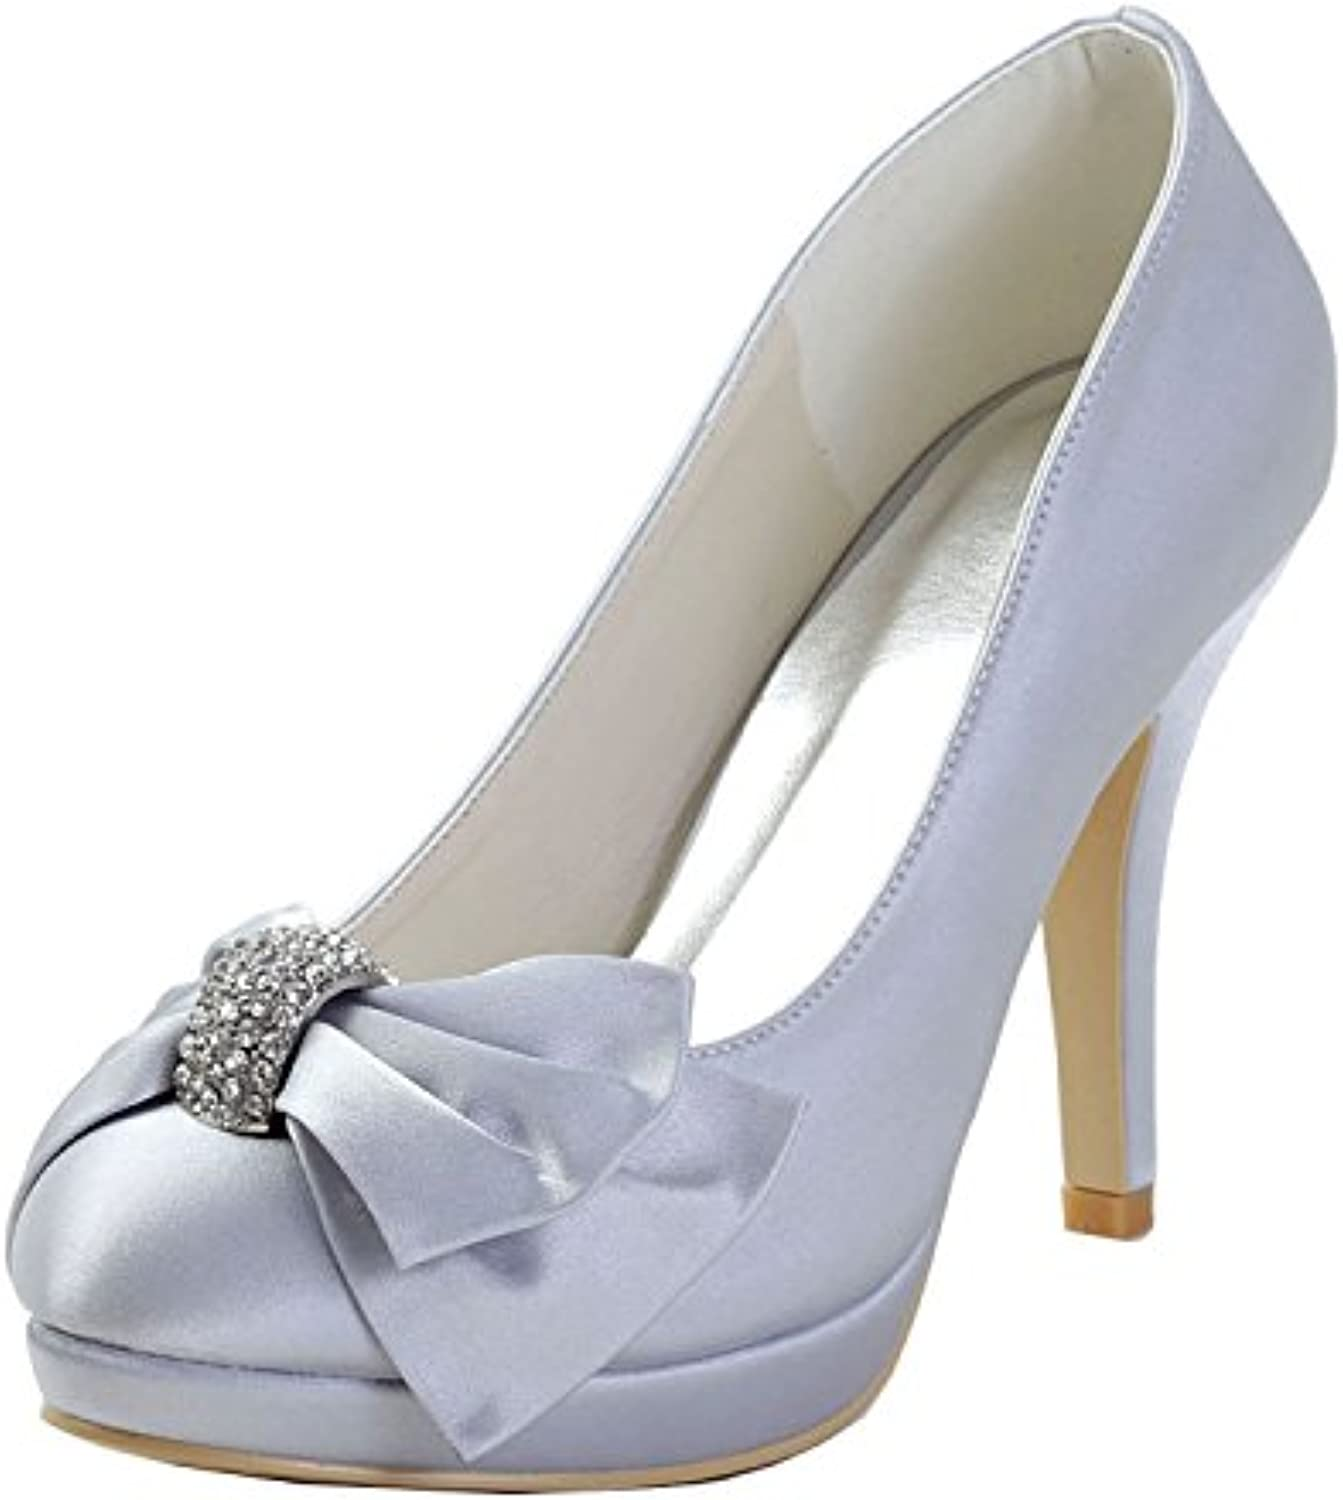 6d556e2a7d09 MINITOO GYMZ648 Womens Pointed Toe Stiletto Heel Silver Silver Silver Satin  Knot Bridal Wedding Shoes UK 9 B074RZ2GX5 Parent a3dd85